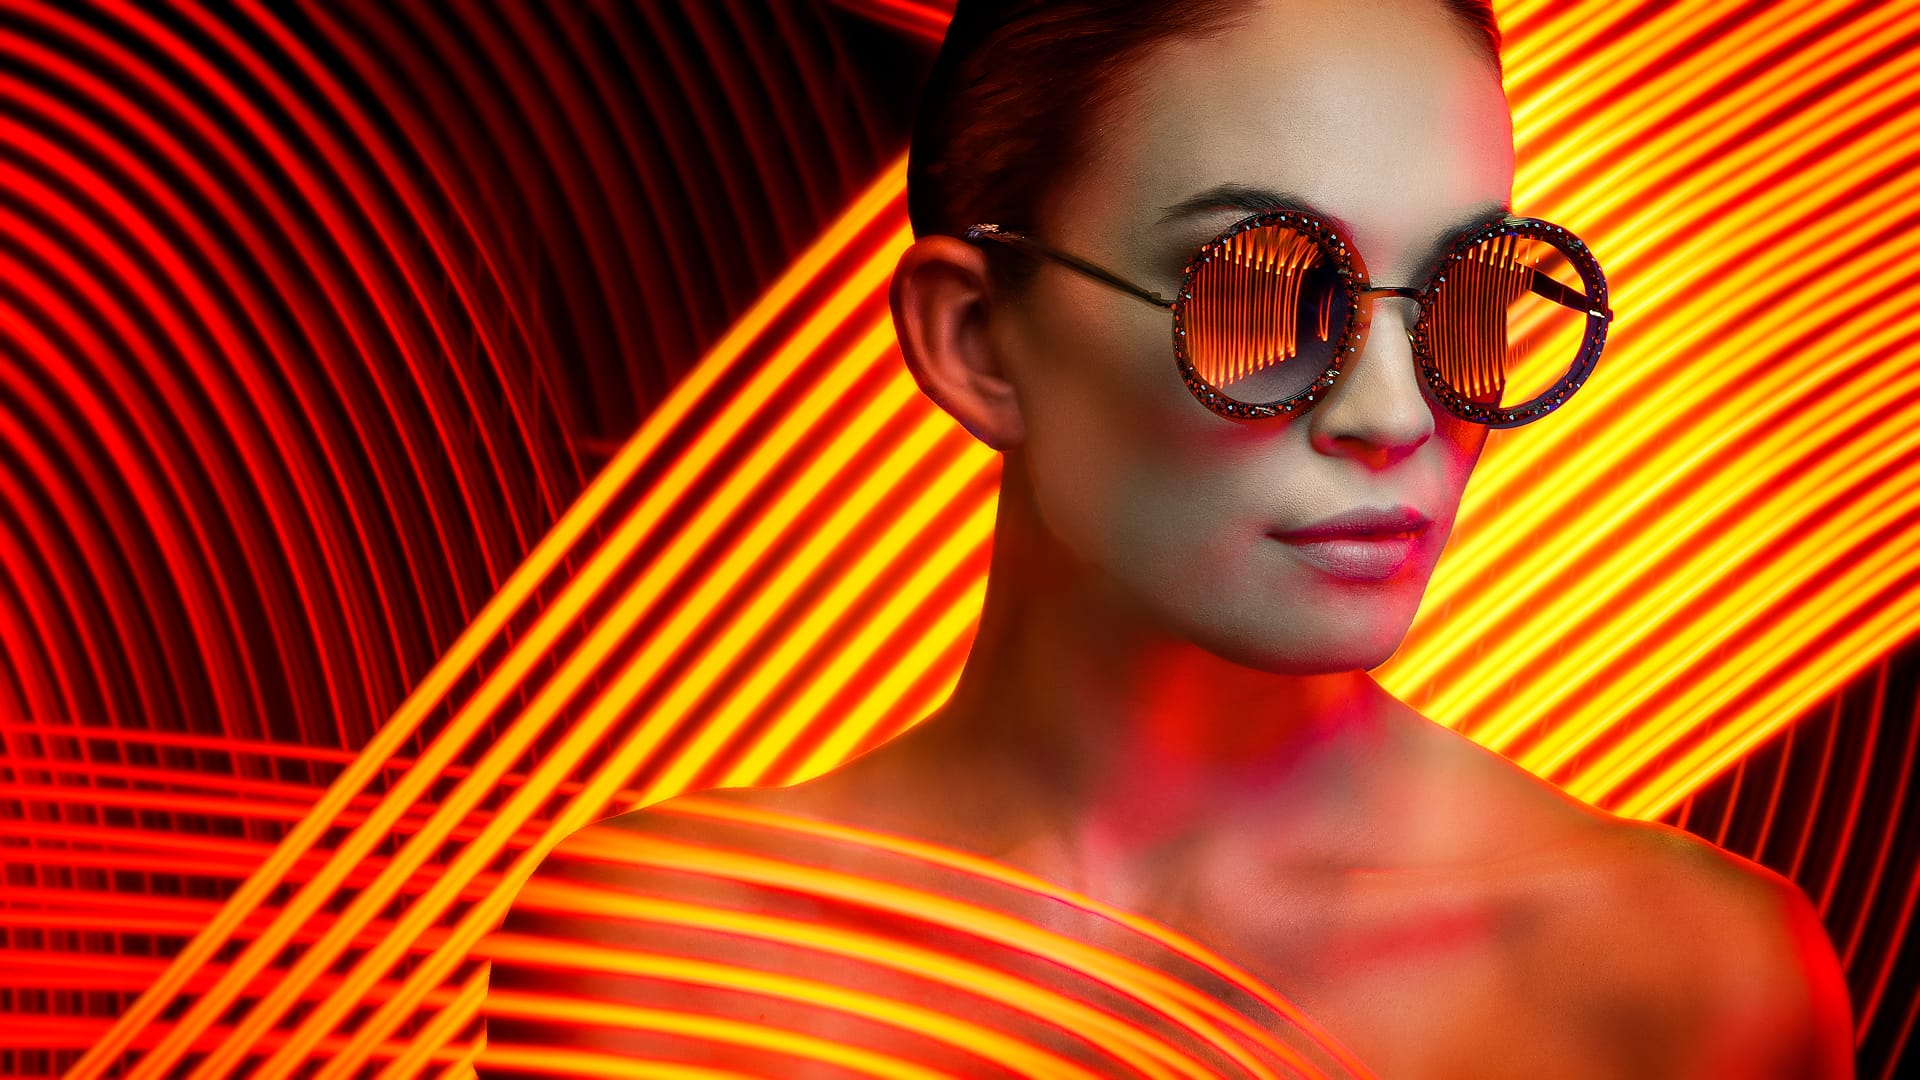 Photo of Bold and Beautiful Fashion Portraits with the Olympus OM-D E-M1X